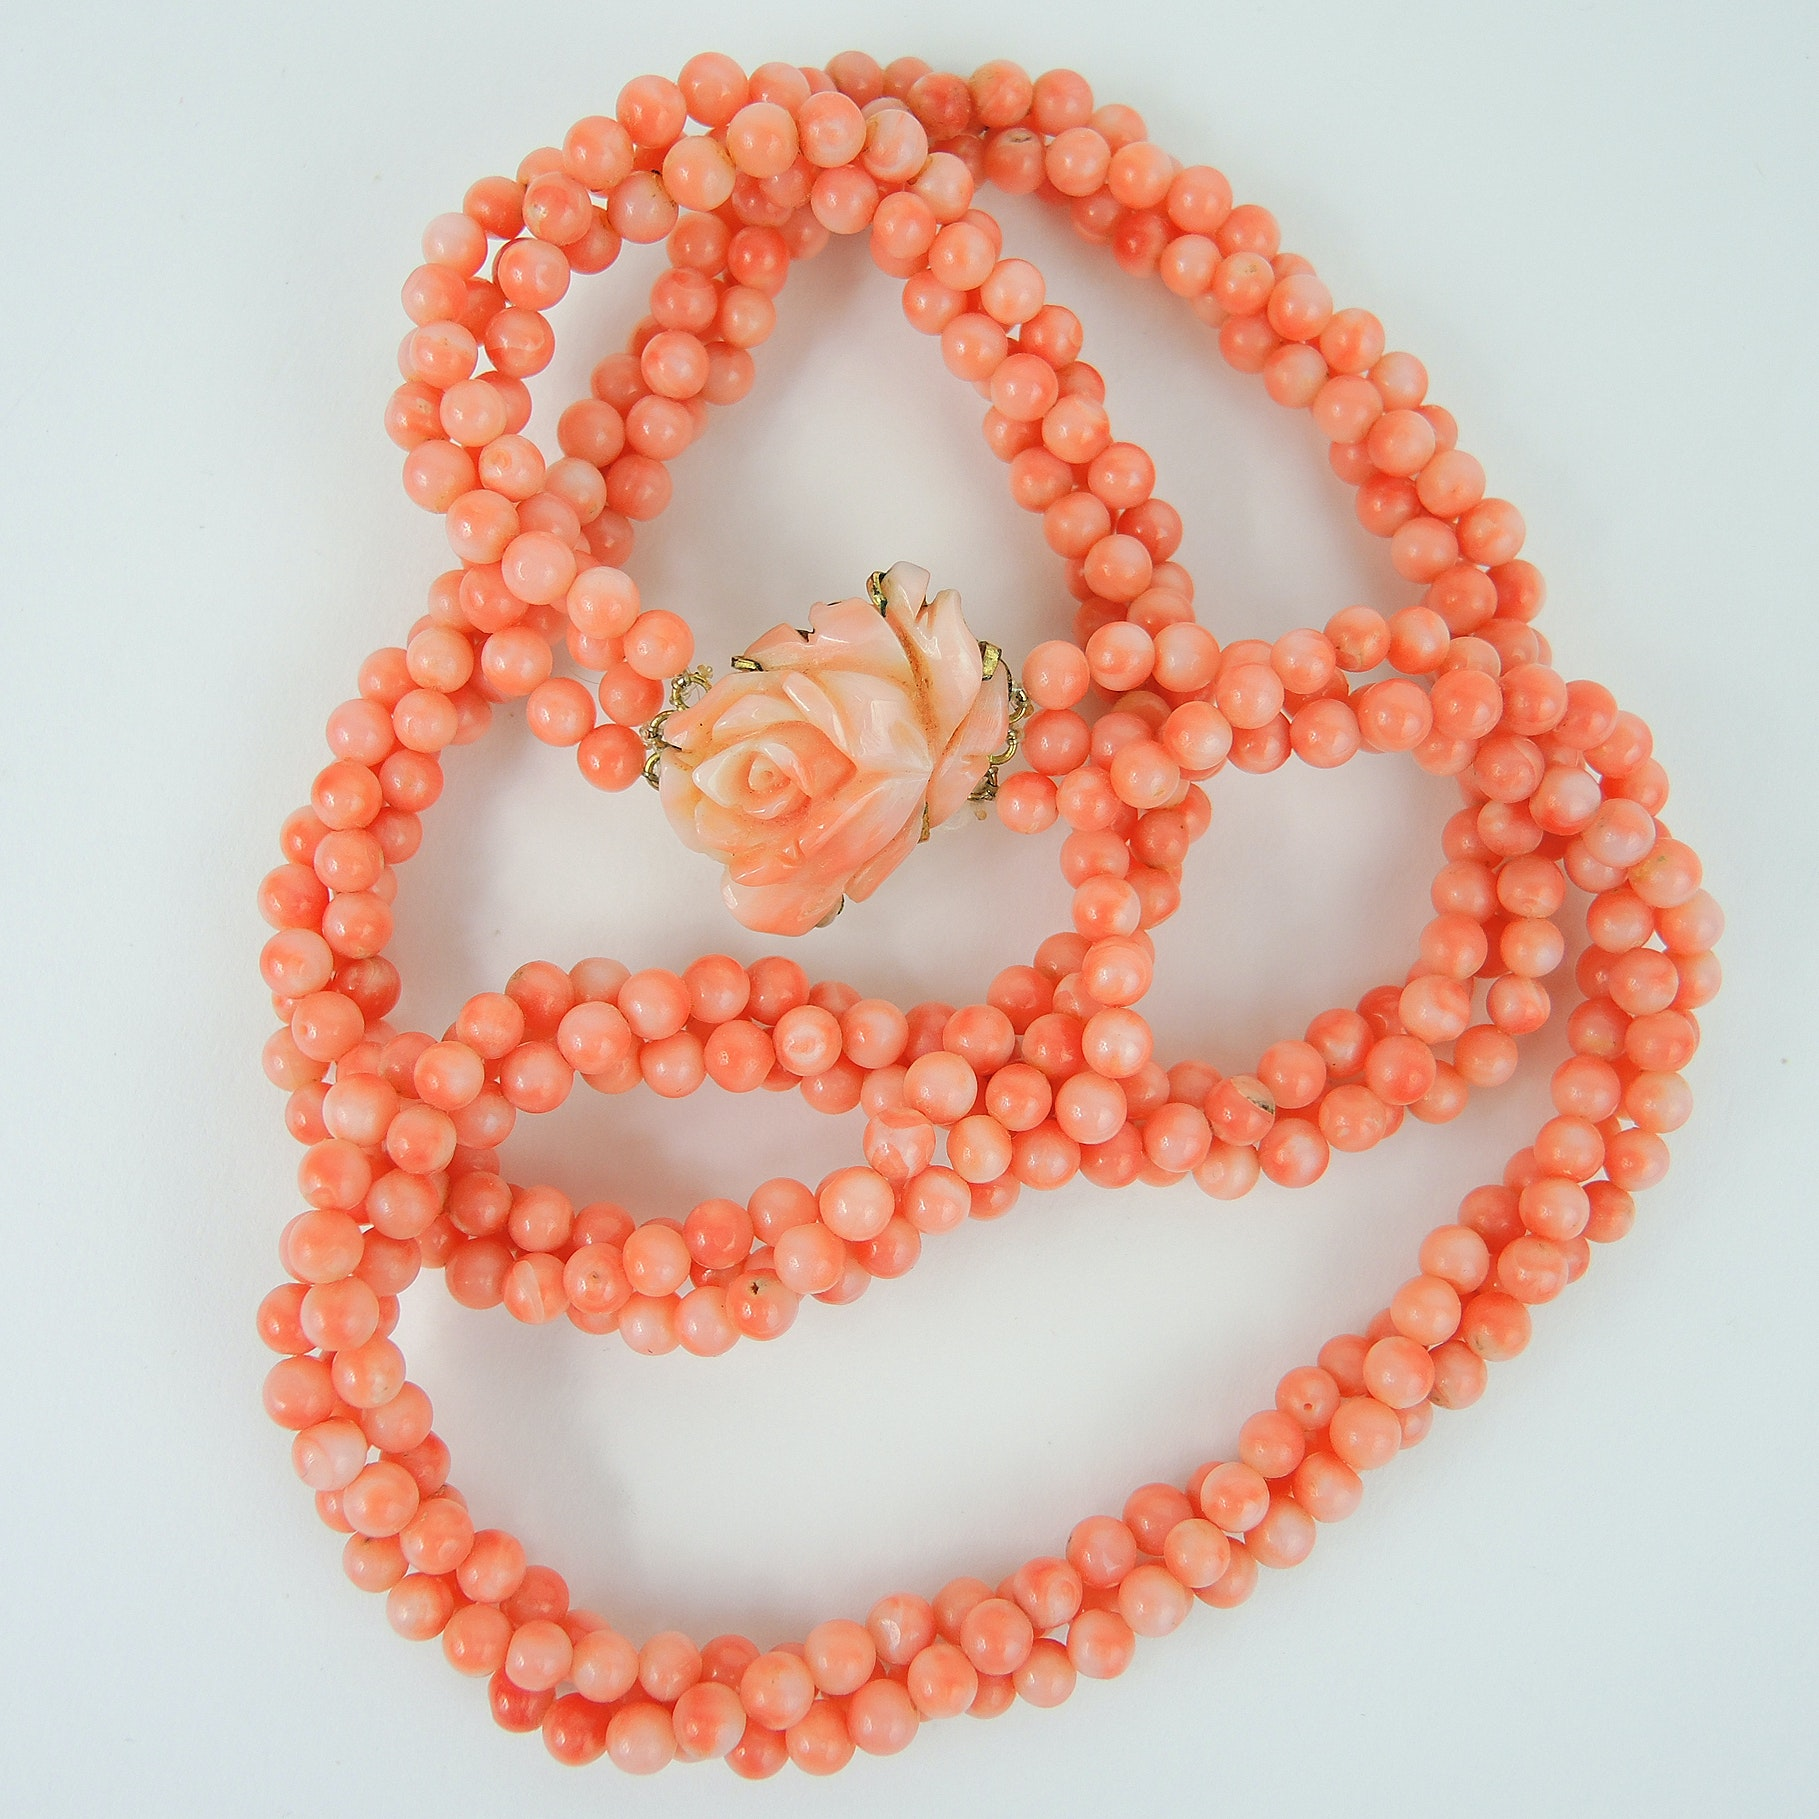 Beaded Coral Necklace with Carved Flower Pendant